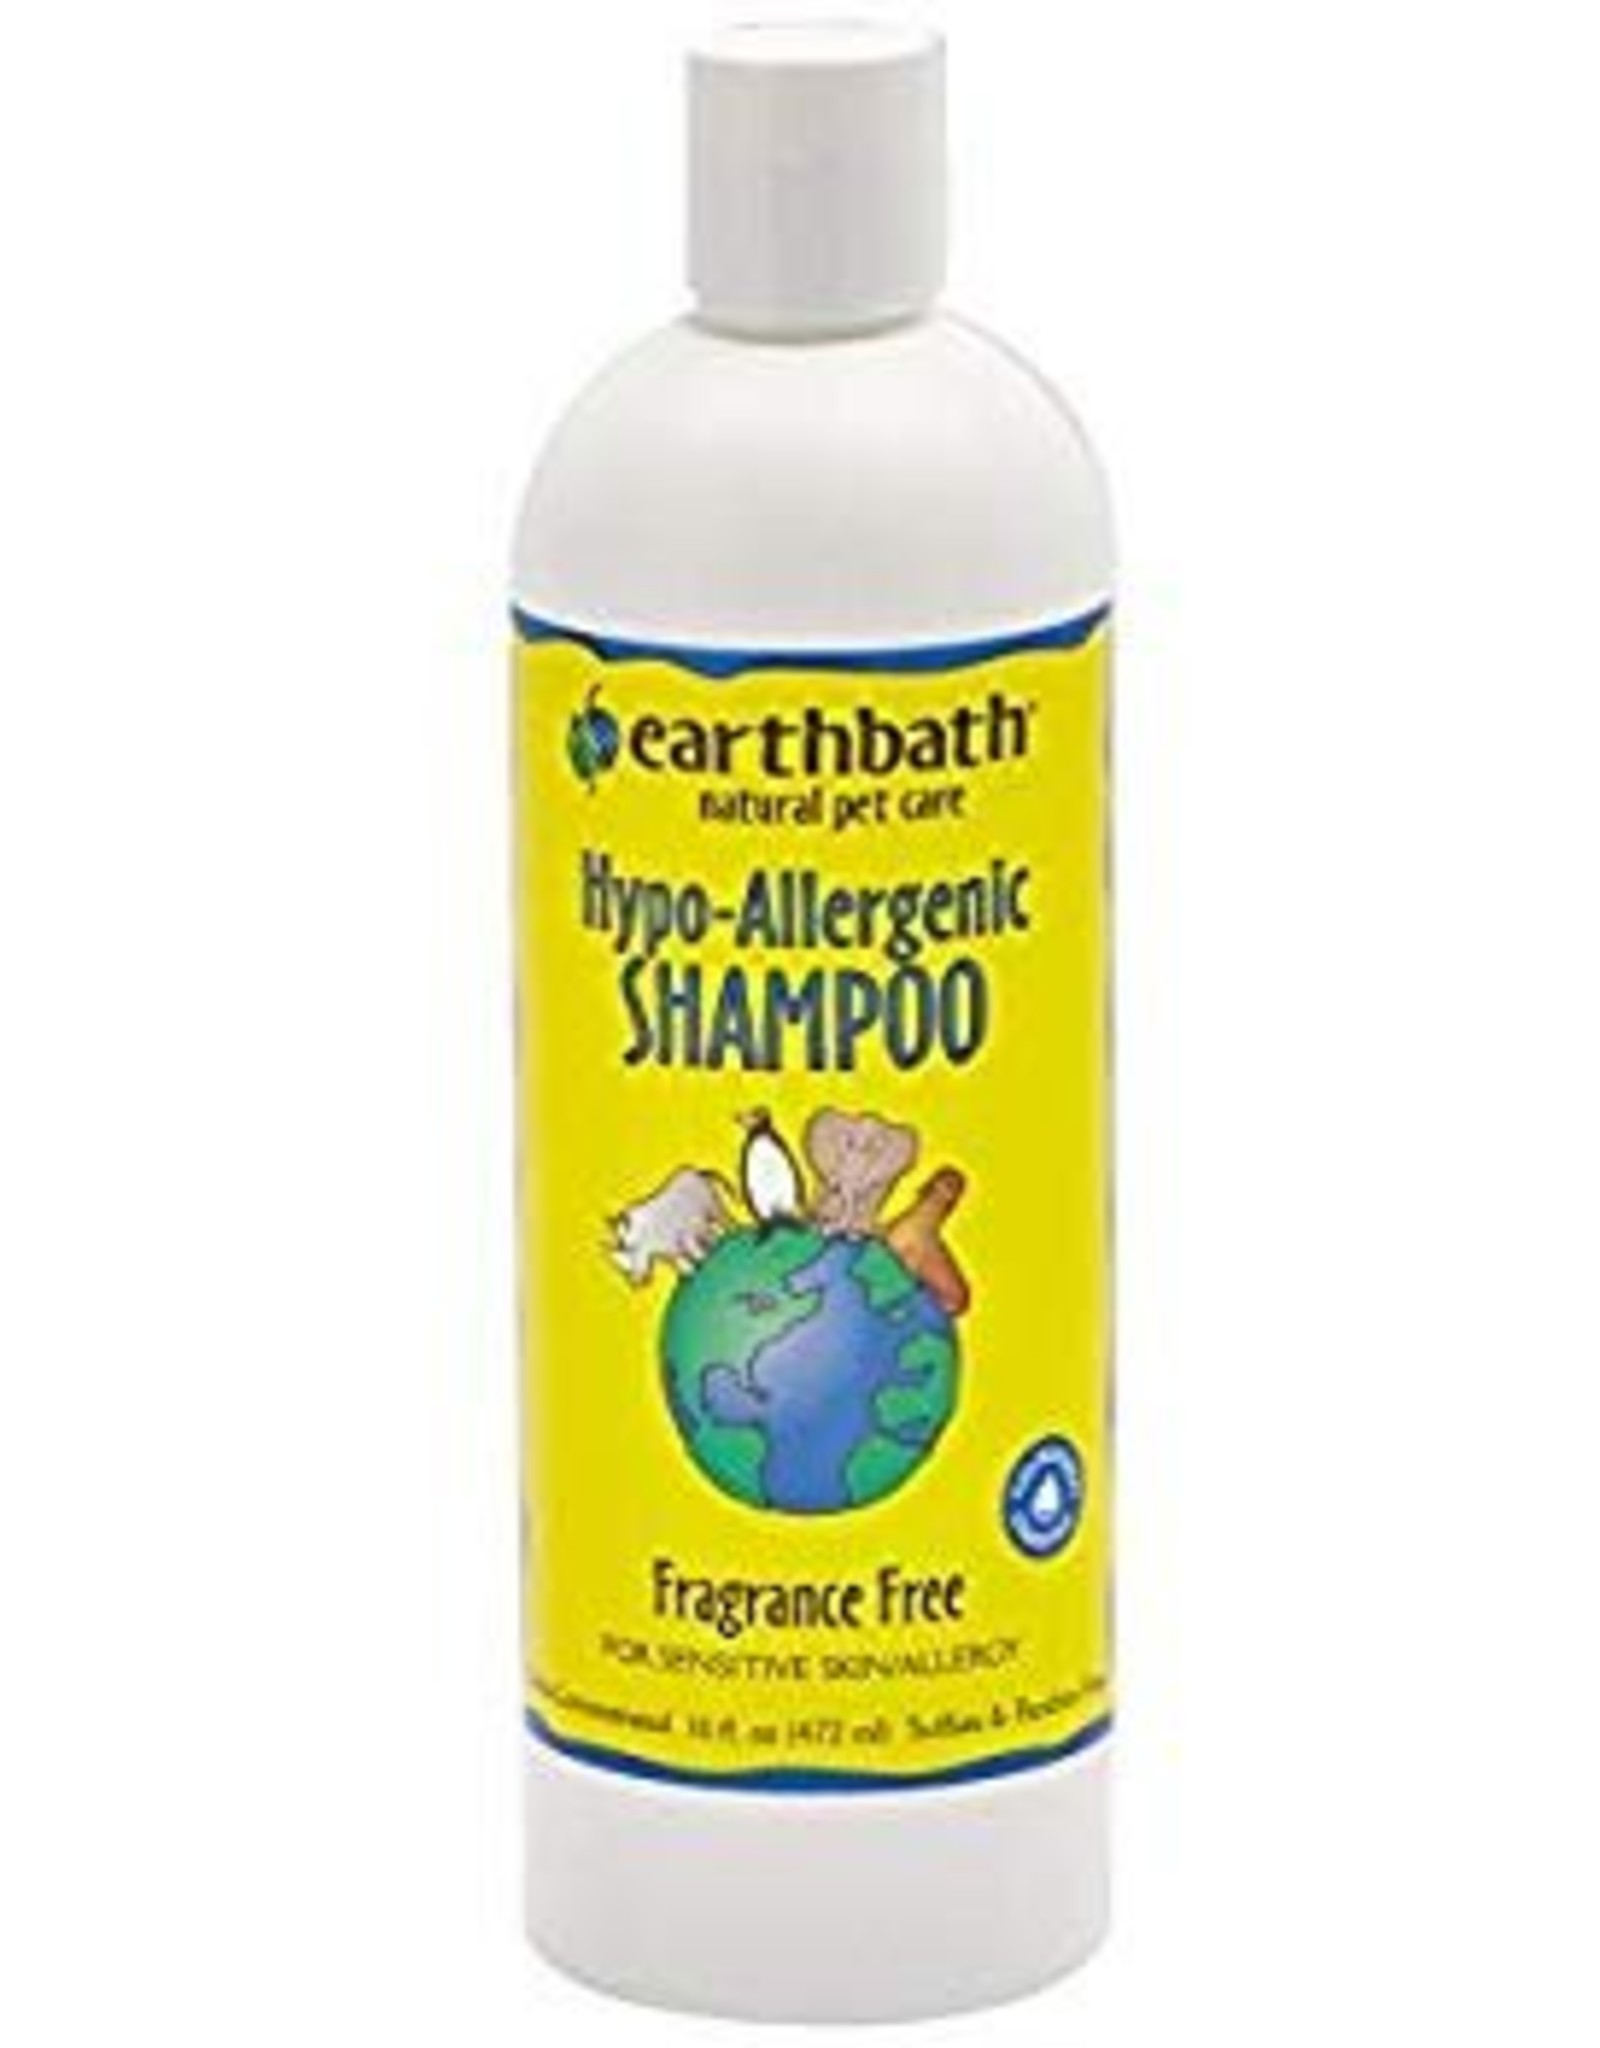 Earthbath Hypo-Allergenic Dog & Cat Shampoo, 16 oz.